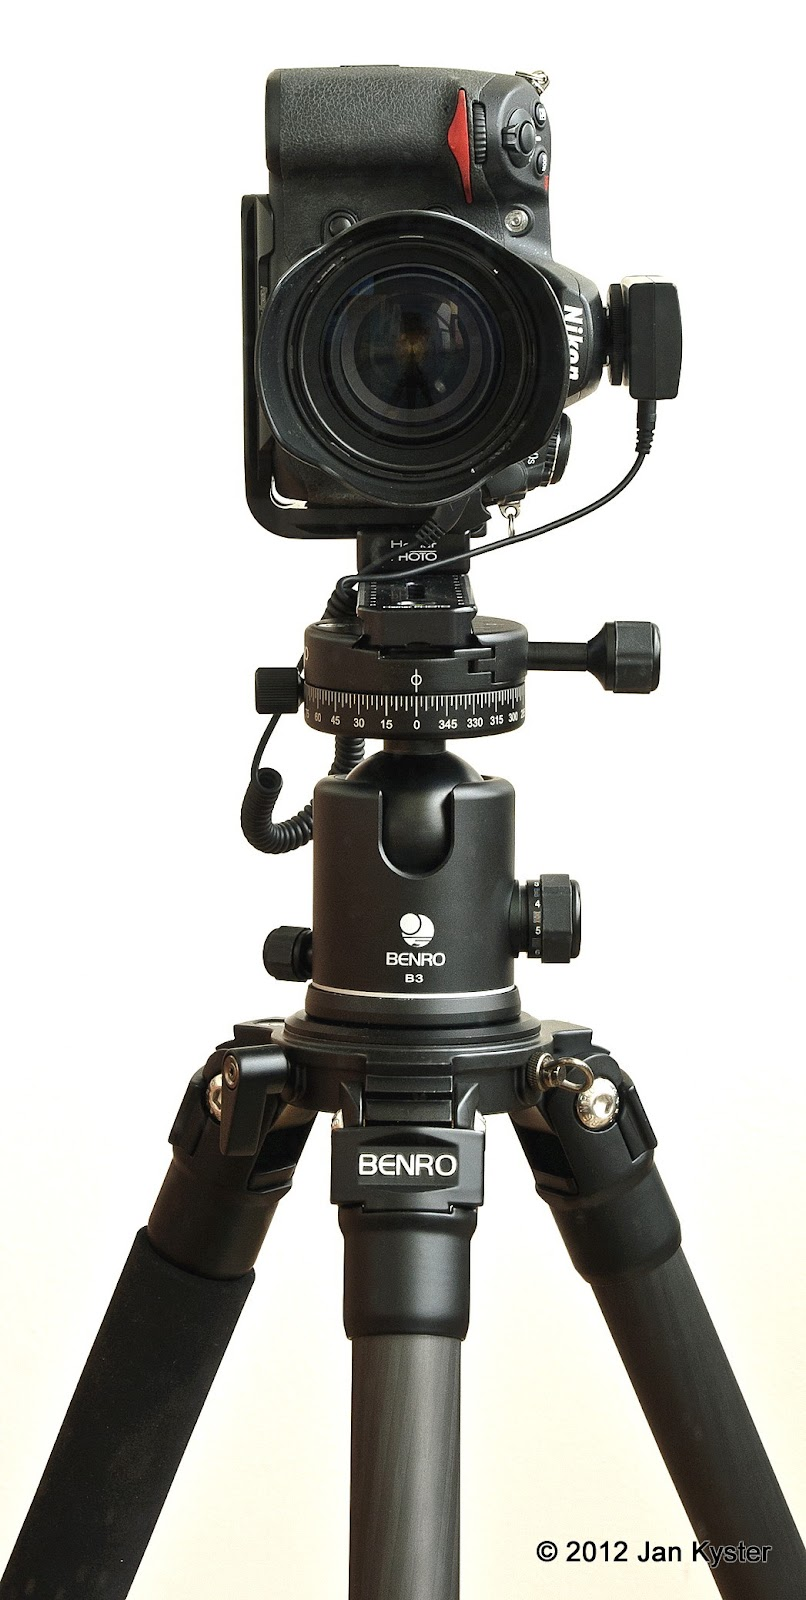 Nikon 300s w/ RRS L bracket + Phottix remote on Benro C3770T CF Tripod w/ Benro B-3 + Benro PC-1